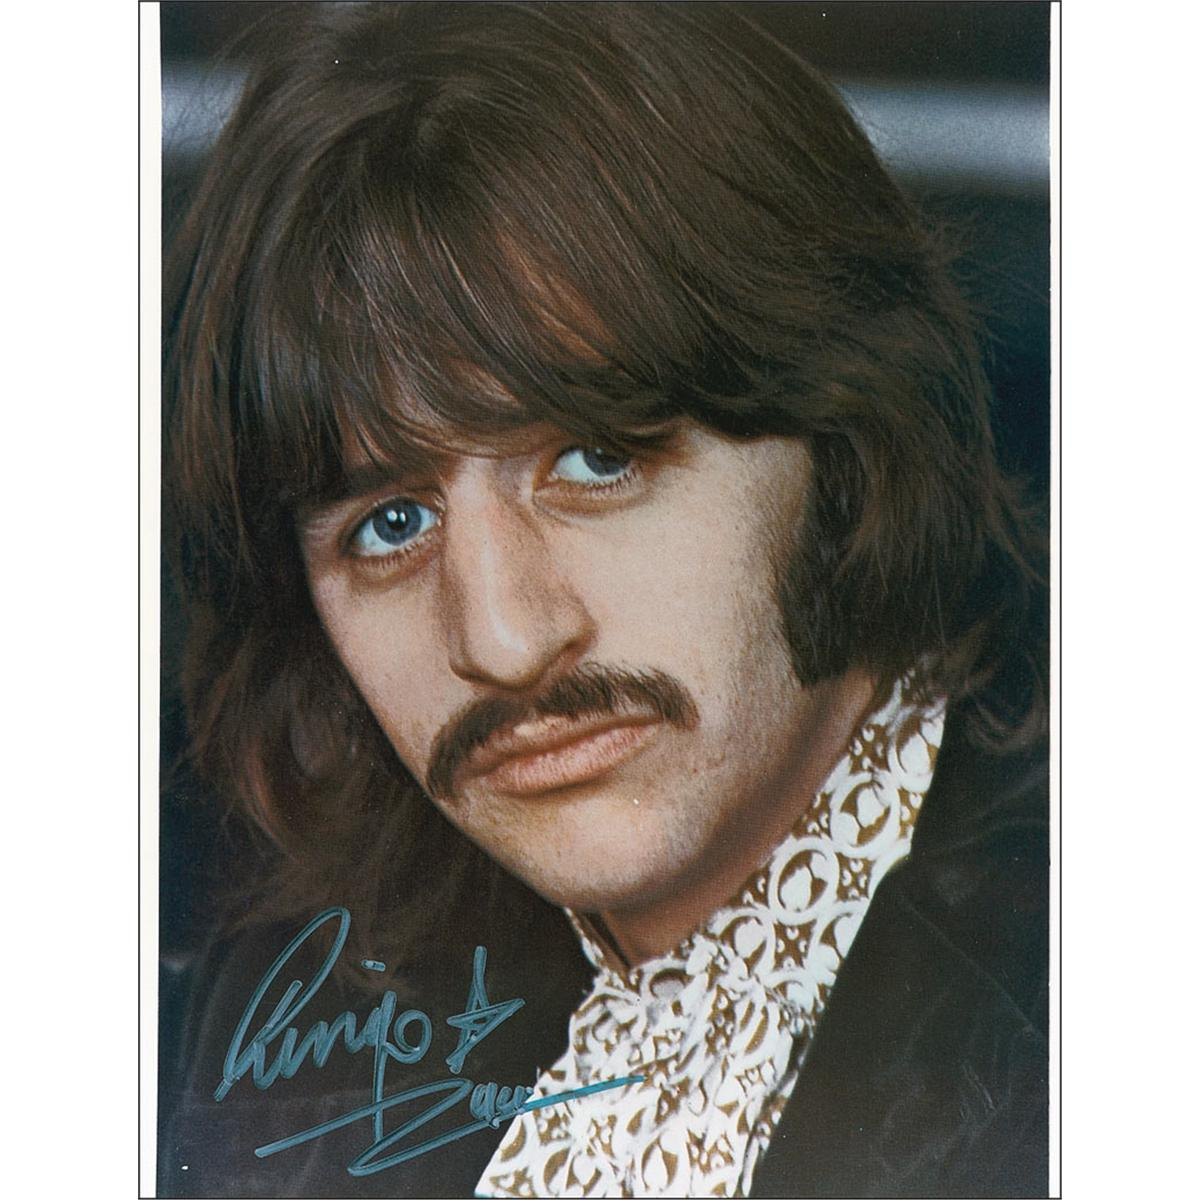 Beatles Ringo Starr